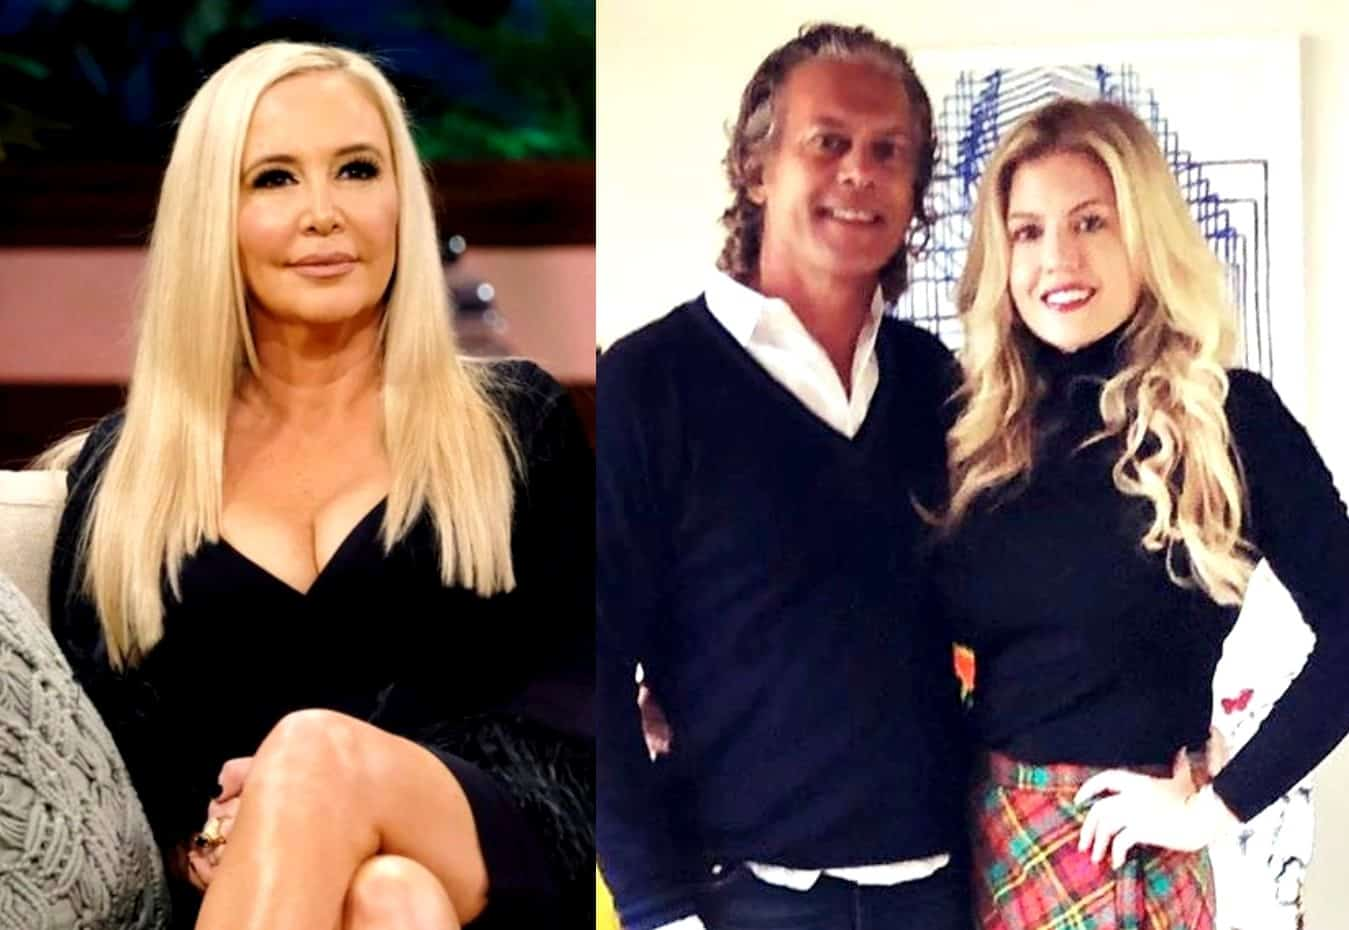 Shannon Beador Reveals She Sent Ex-Husband David A Gift After Welcoming Baby With Wife Lesley Cook, Plus Are RHOC Exes On Speaking Terms?